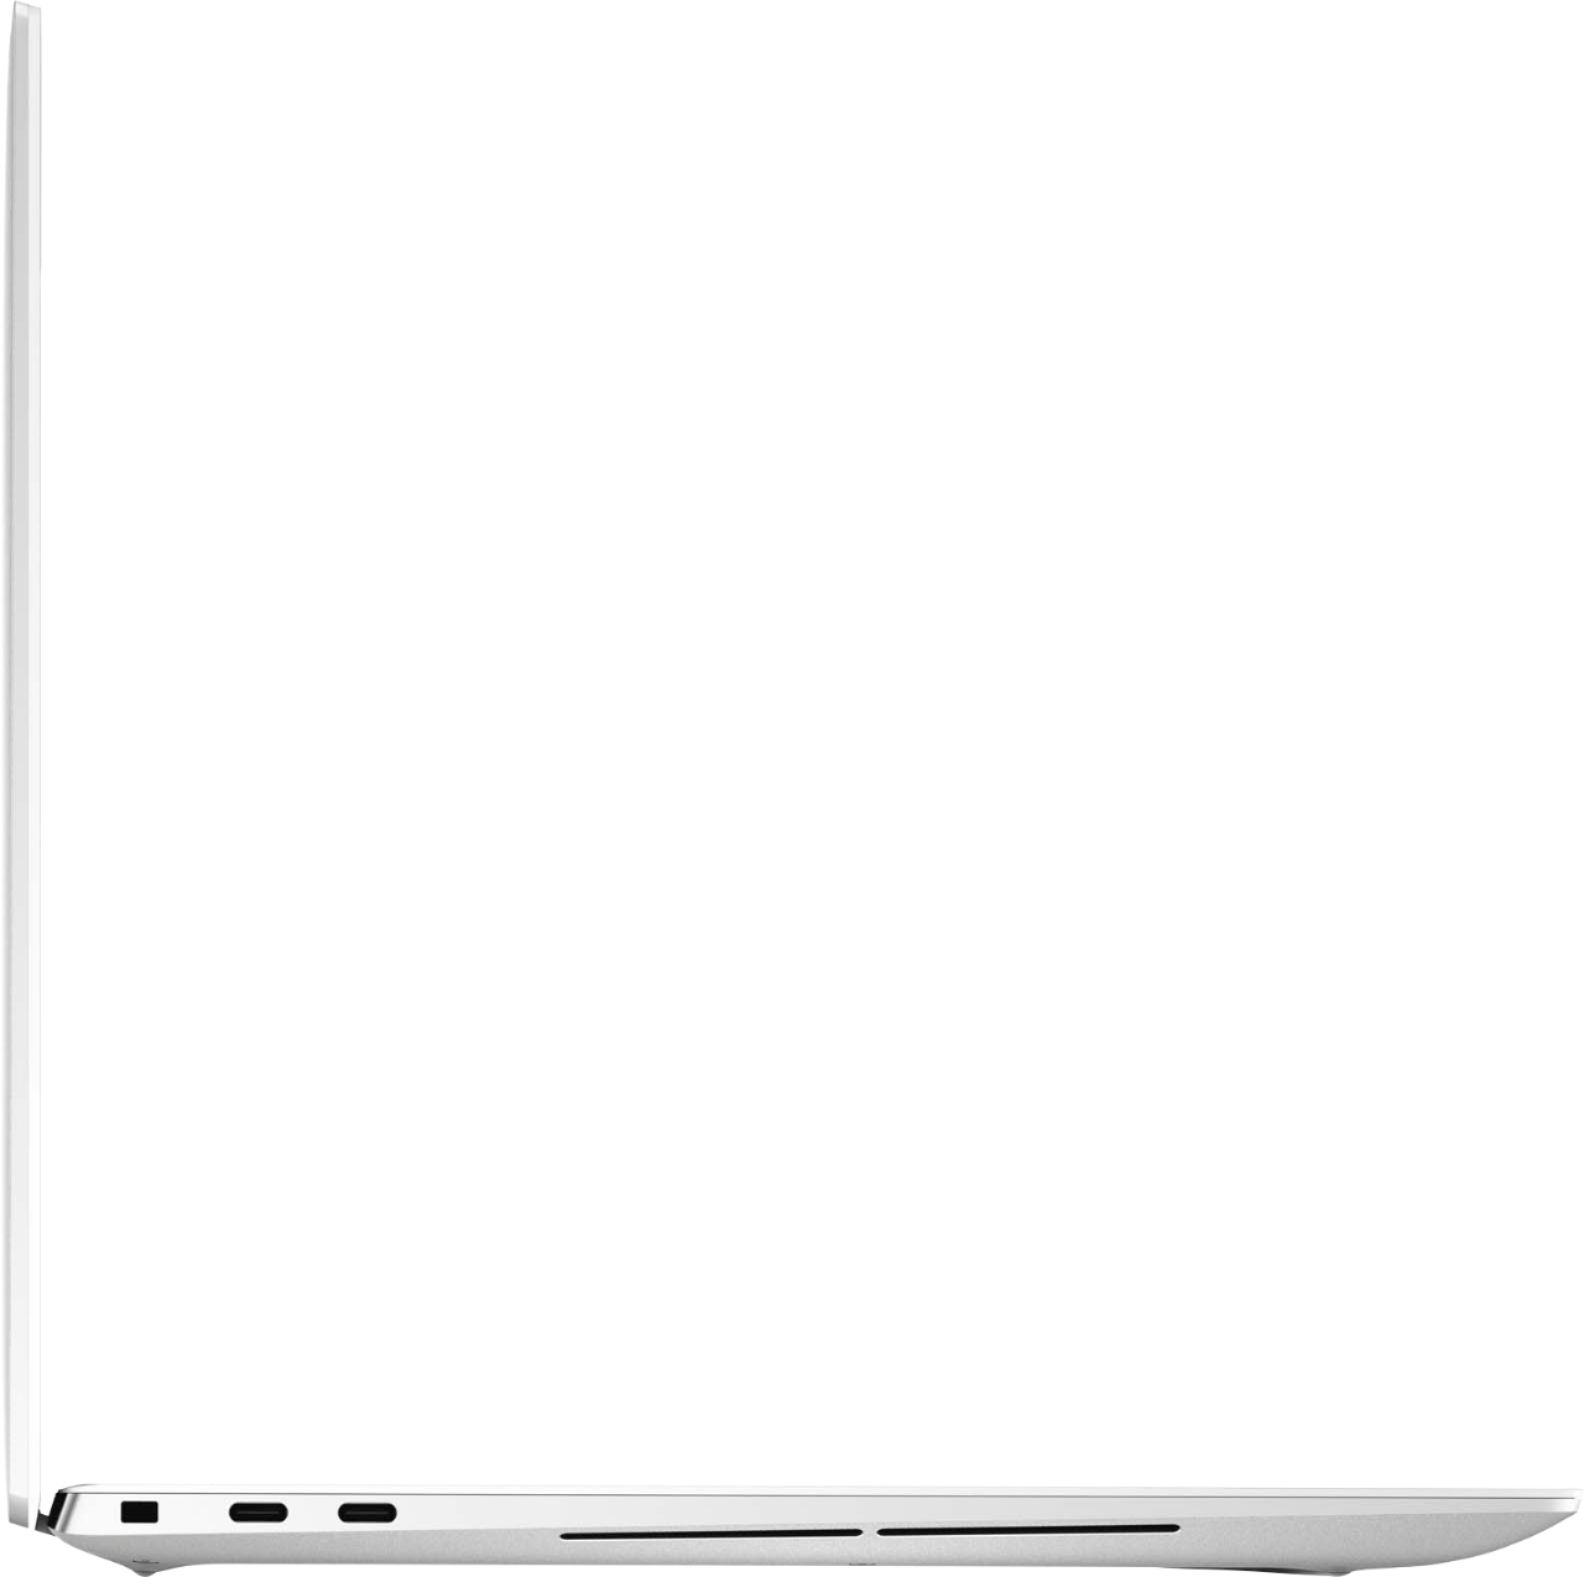 """Alt View Zoom 3. Dell - XPS 15.6"""" UHD+ Touch Laptop - Intel Core i7 - 16GB Memory - 512GB SSD - NVIDIA GeForce GTX 1650 Ti - White."""